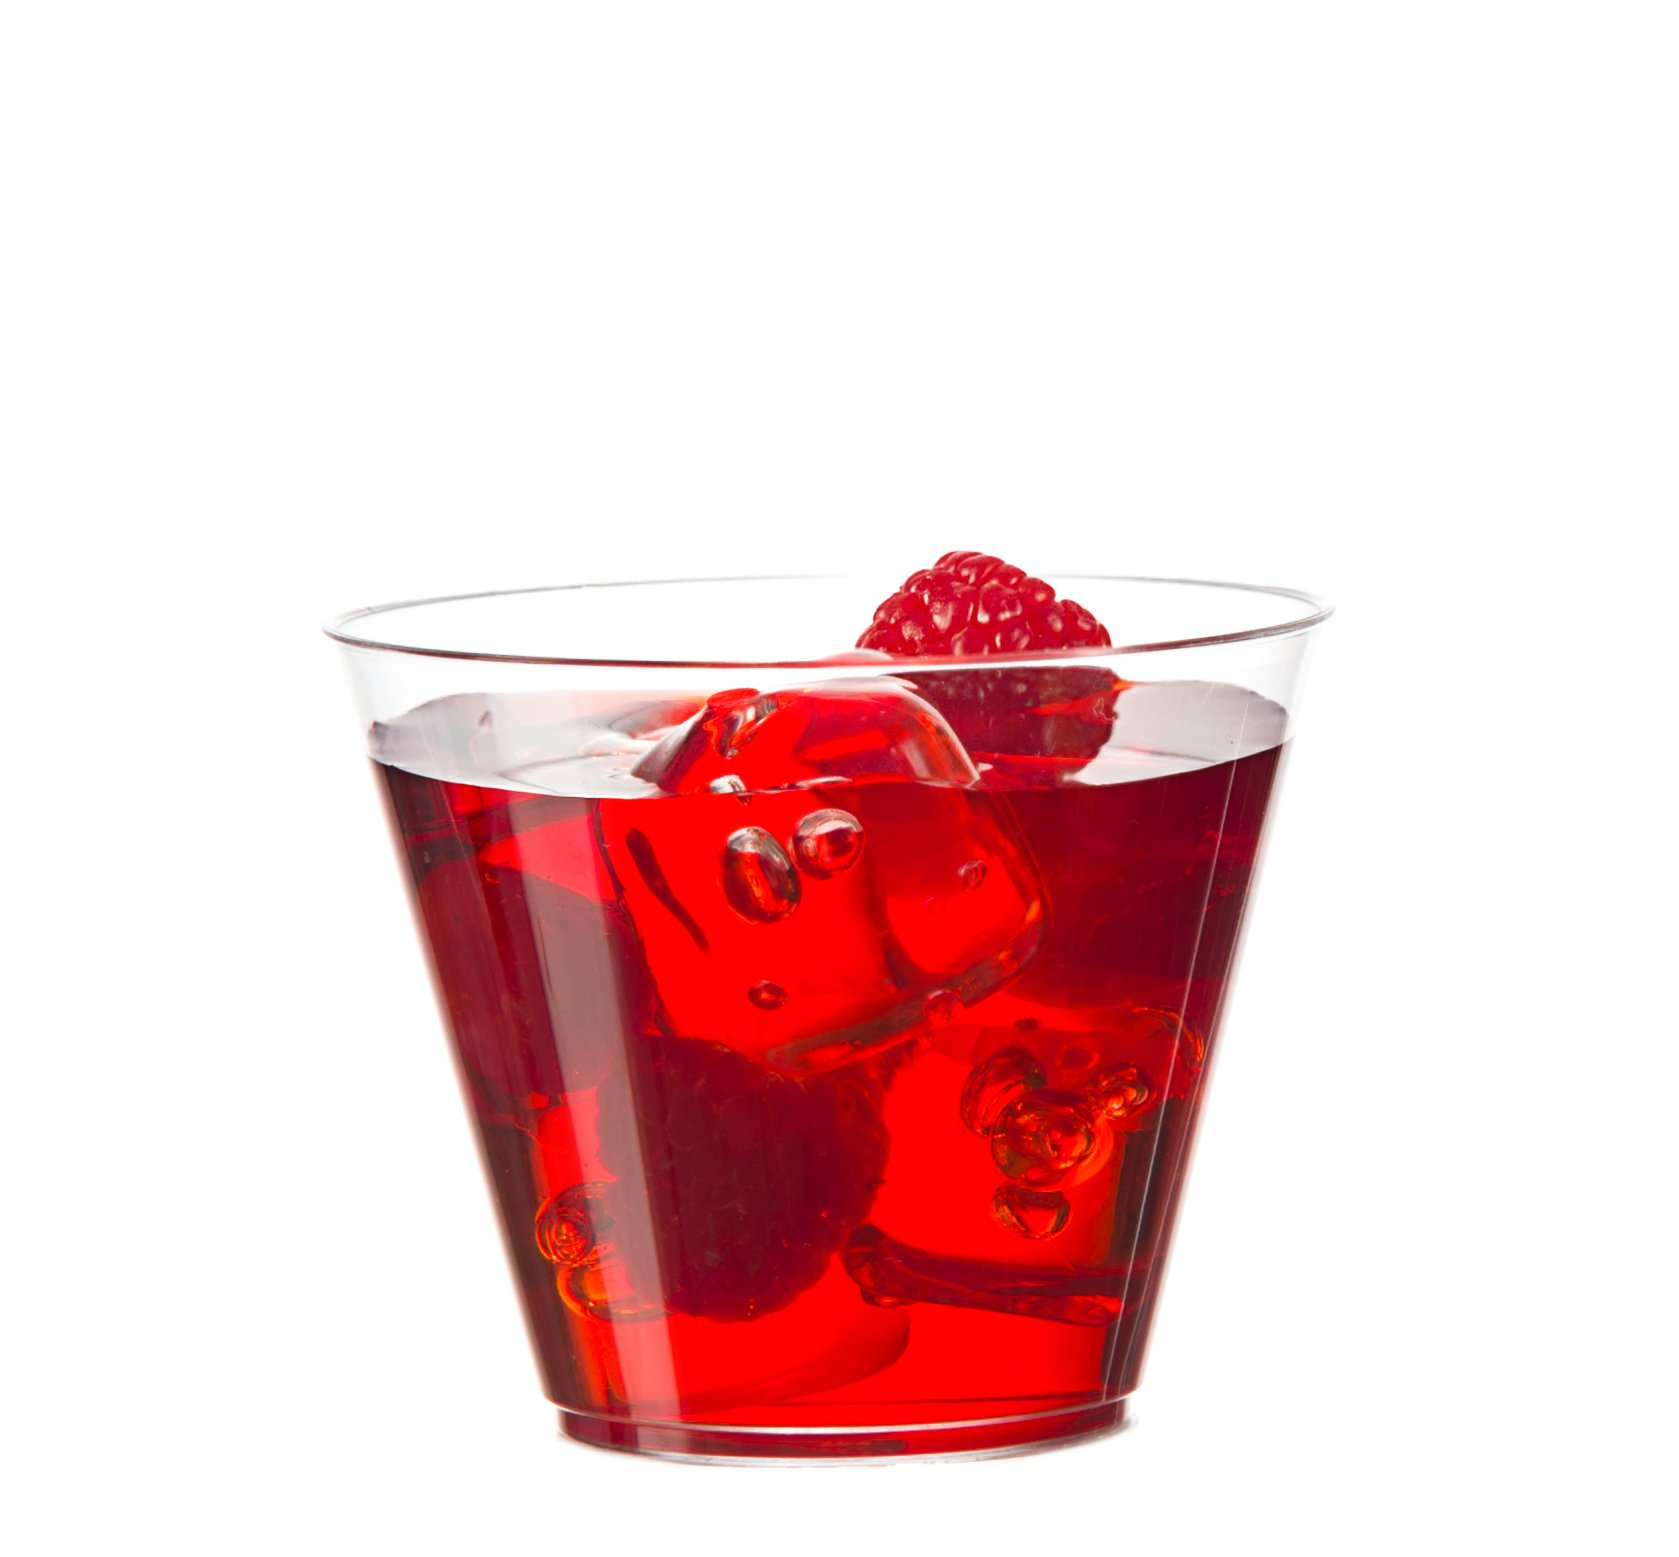 [500 Tumblers] Embellish Crystal Clear Disposable Hard Plastic 9 Oz Old Fashion Style, Fancy Cups, Great For Wine, Cocktail, Or Any Beverage, Wedding, Catering, Parties, Buffets, Events, 25 Packs by Embellish